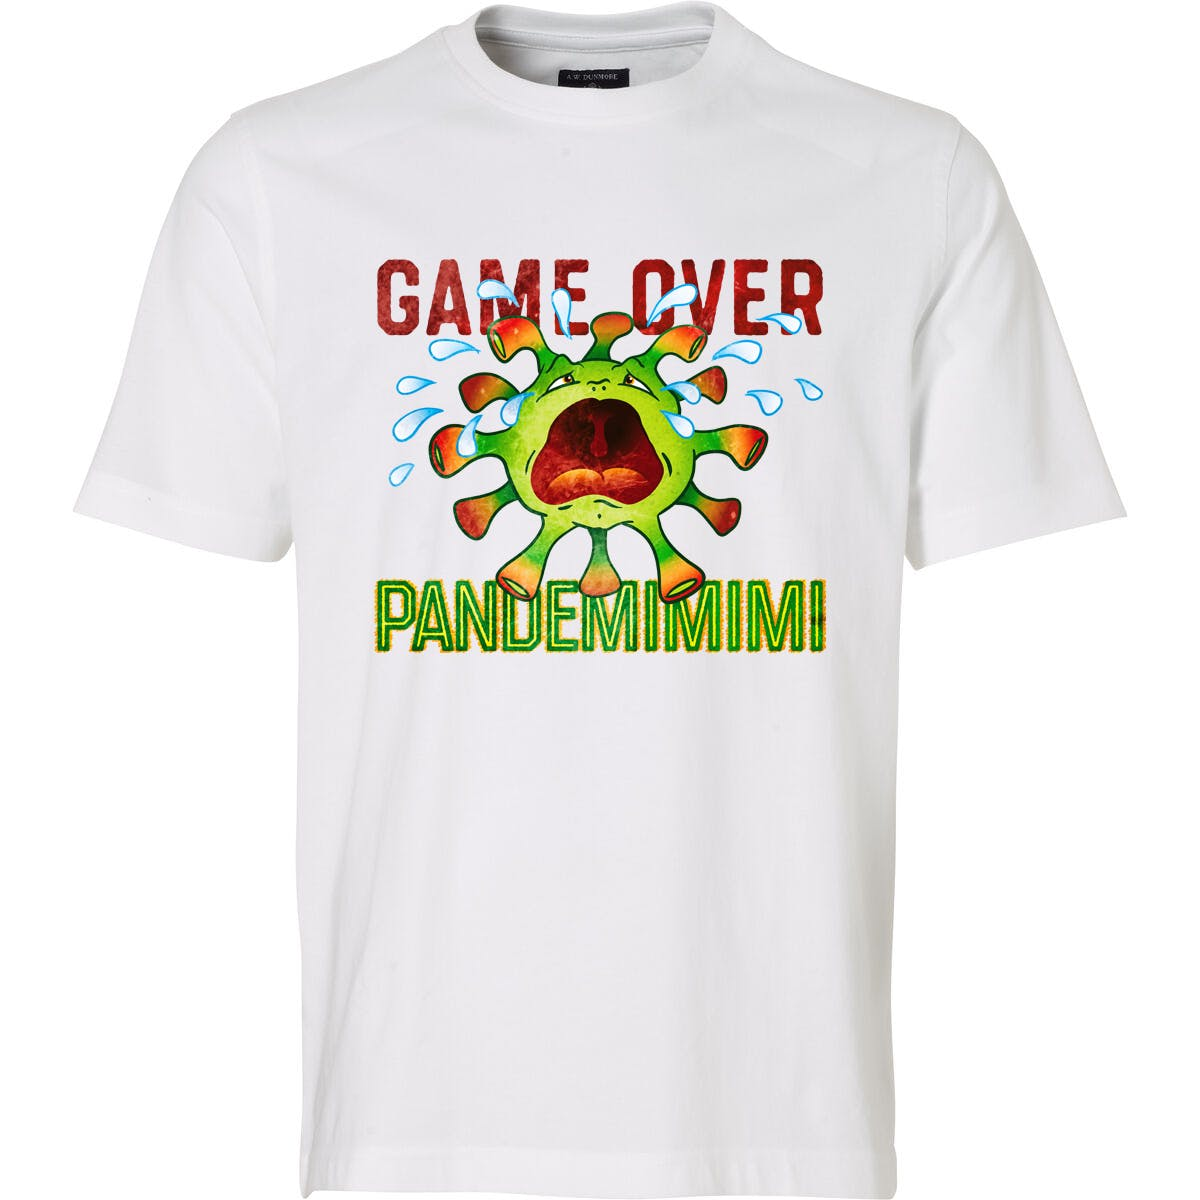 T-Shirt: Pandemimimi GAME OVER